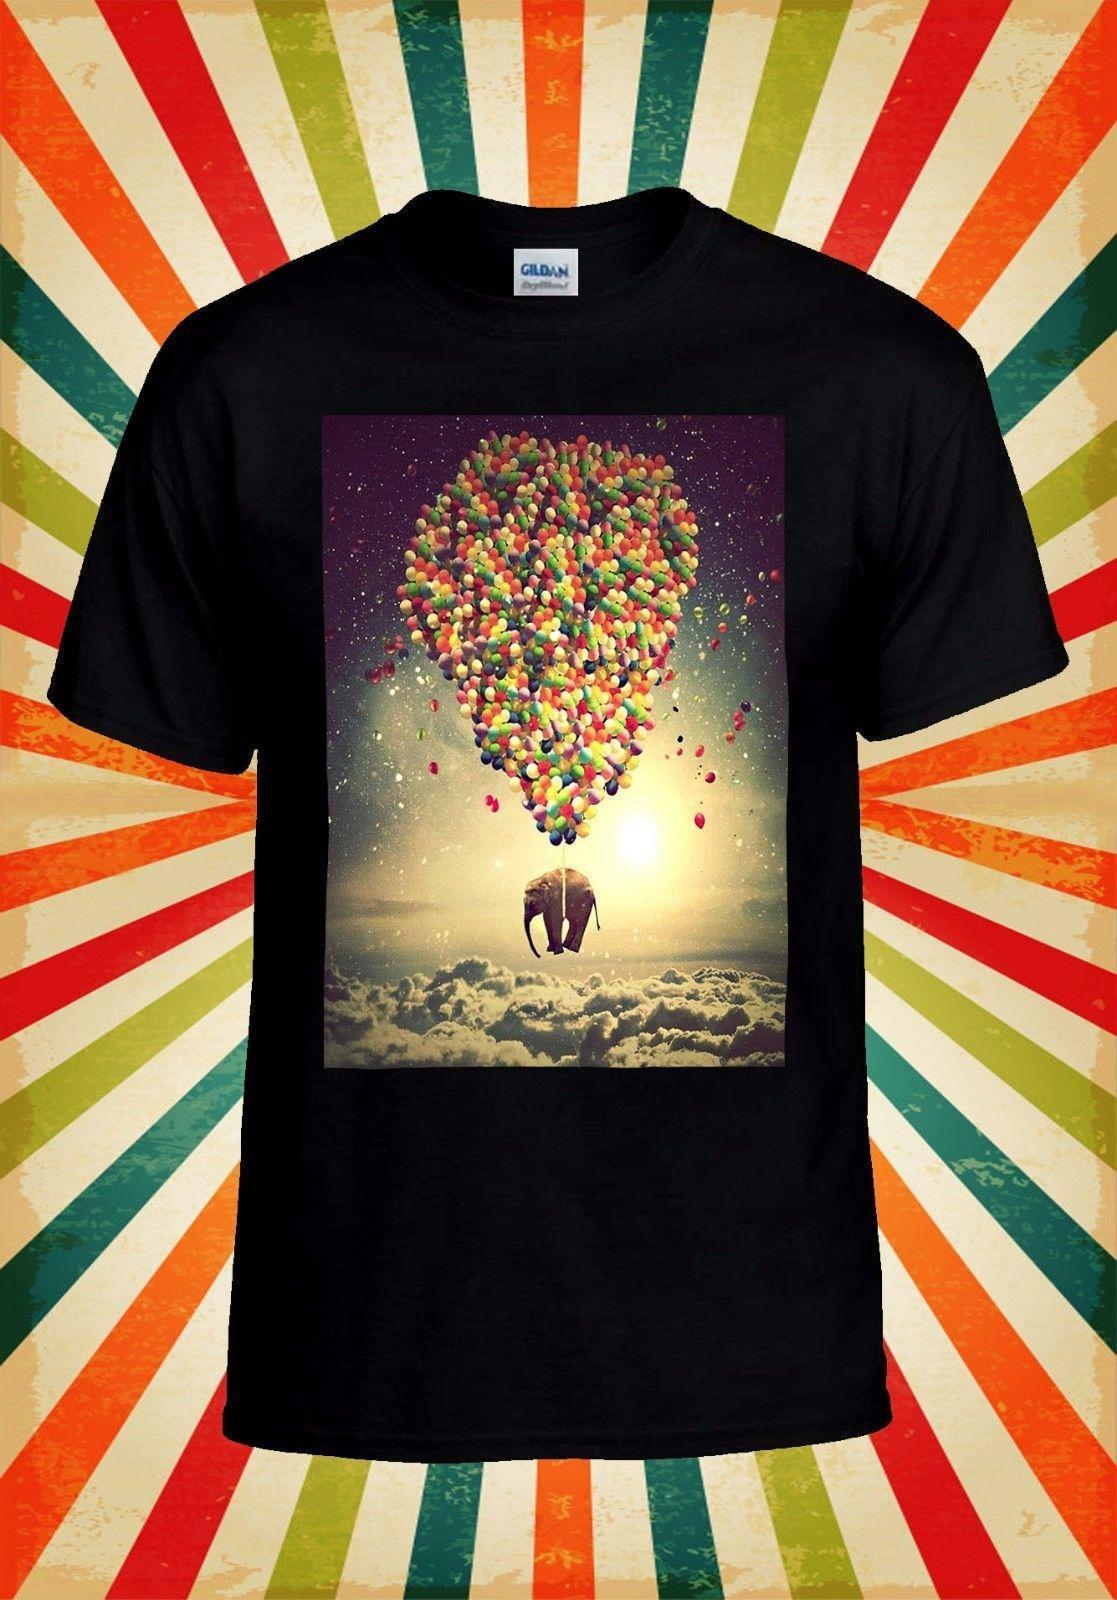 97a2025f93edc6 Balloon Elephant Sky Animal Cute Cool Men Women Vest Tank Top Unisex T Shirt  843 Top Tee 100% Cotton Humor Men Crewneck Tee Shirts Tourist Shirt Fun Tee  ...